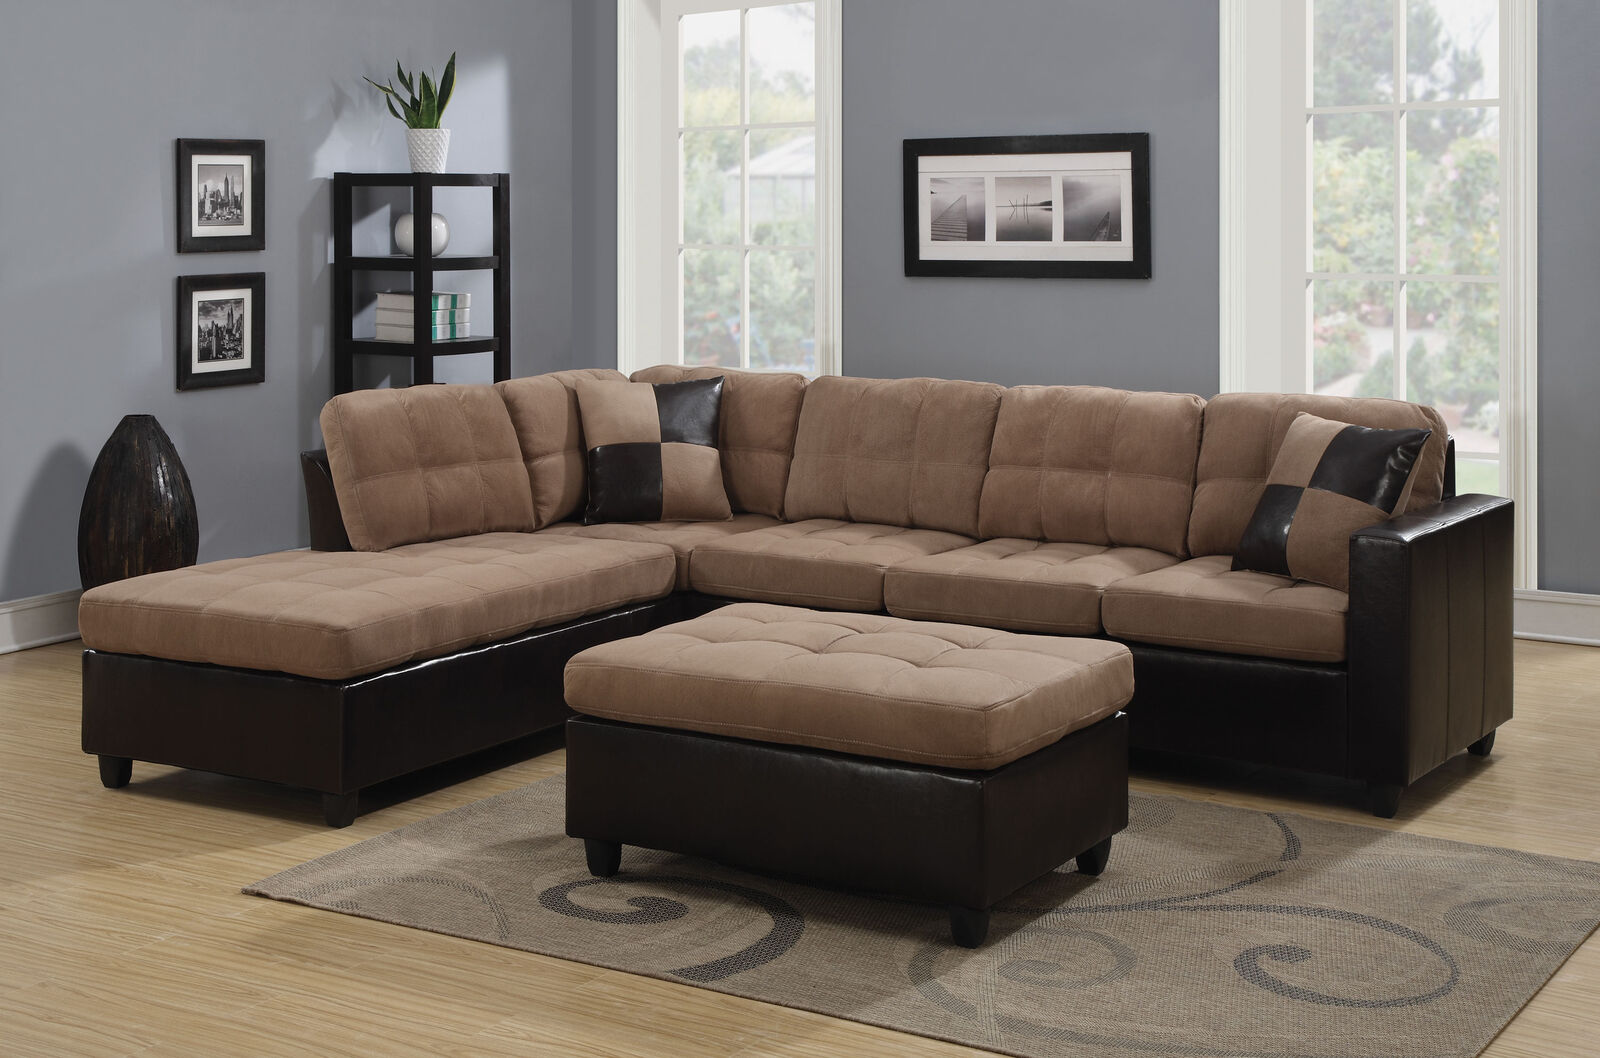 Coaster 505675 Mallory Reversible Sectional Sofa In Chocolate And Tan